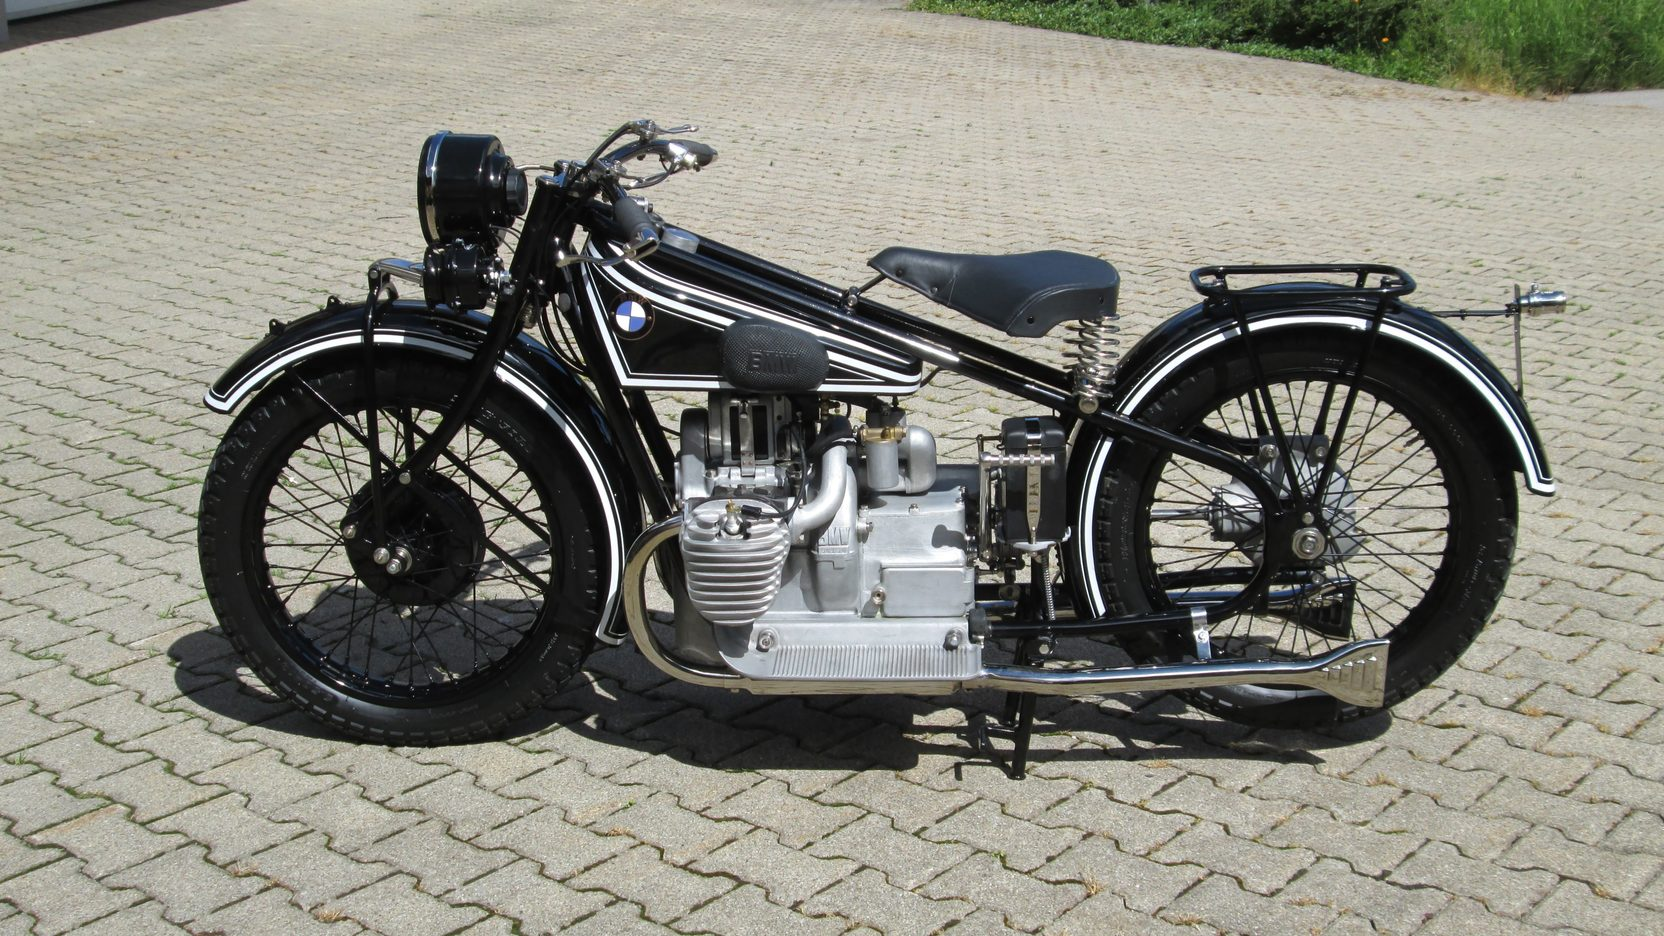 The R52 was introduced in 1928 and it was the first BMW motorcycle to have electric lights as standard equipment.